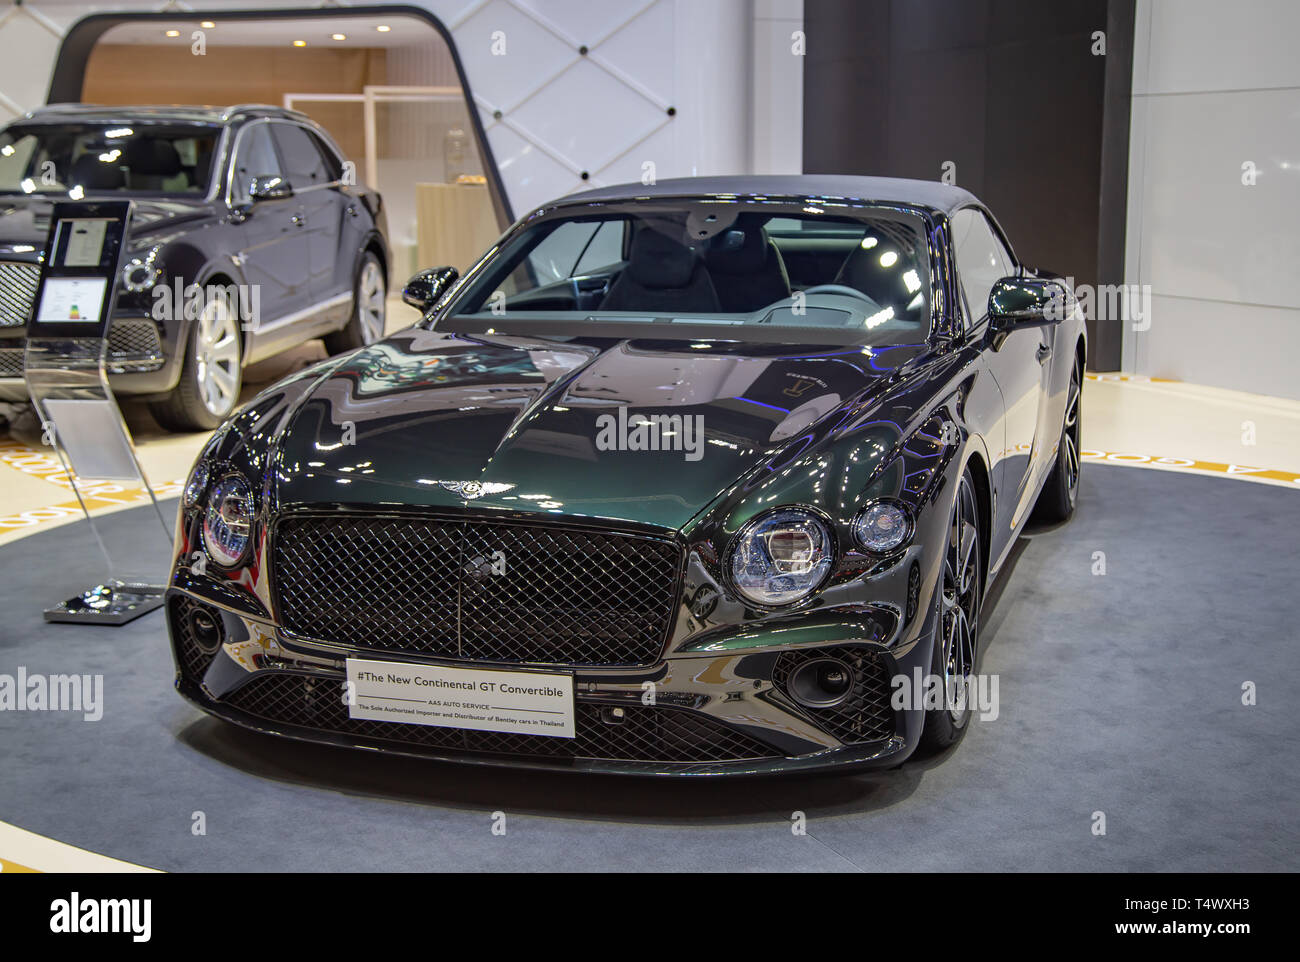 Nonthaburi, Thailand - April 3, 2019: Bentley Continental GT Convertible luxury car presented in Motor Show 2019 - Stock Image